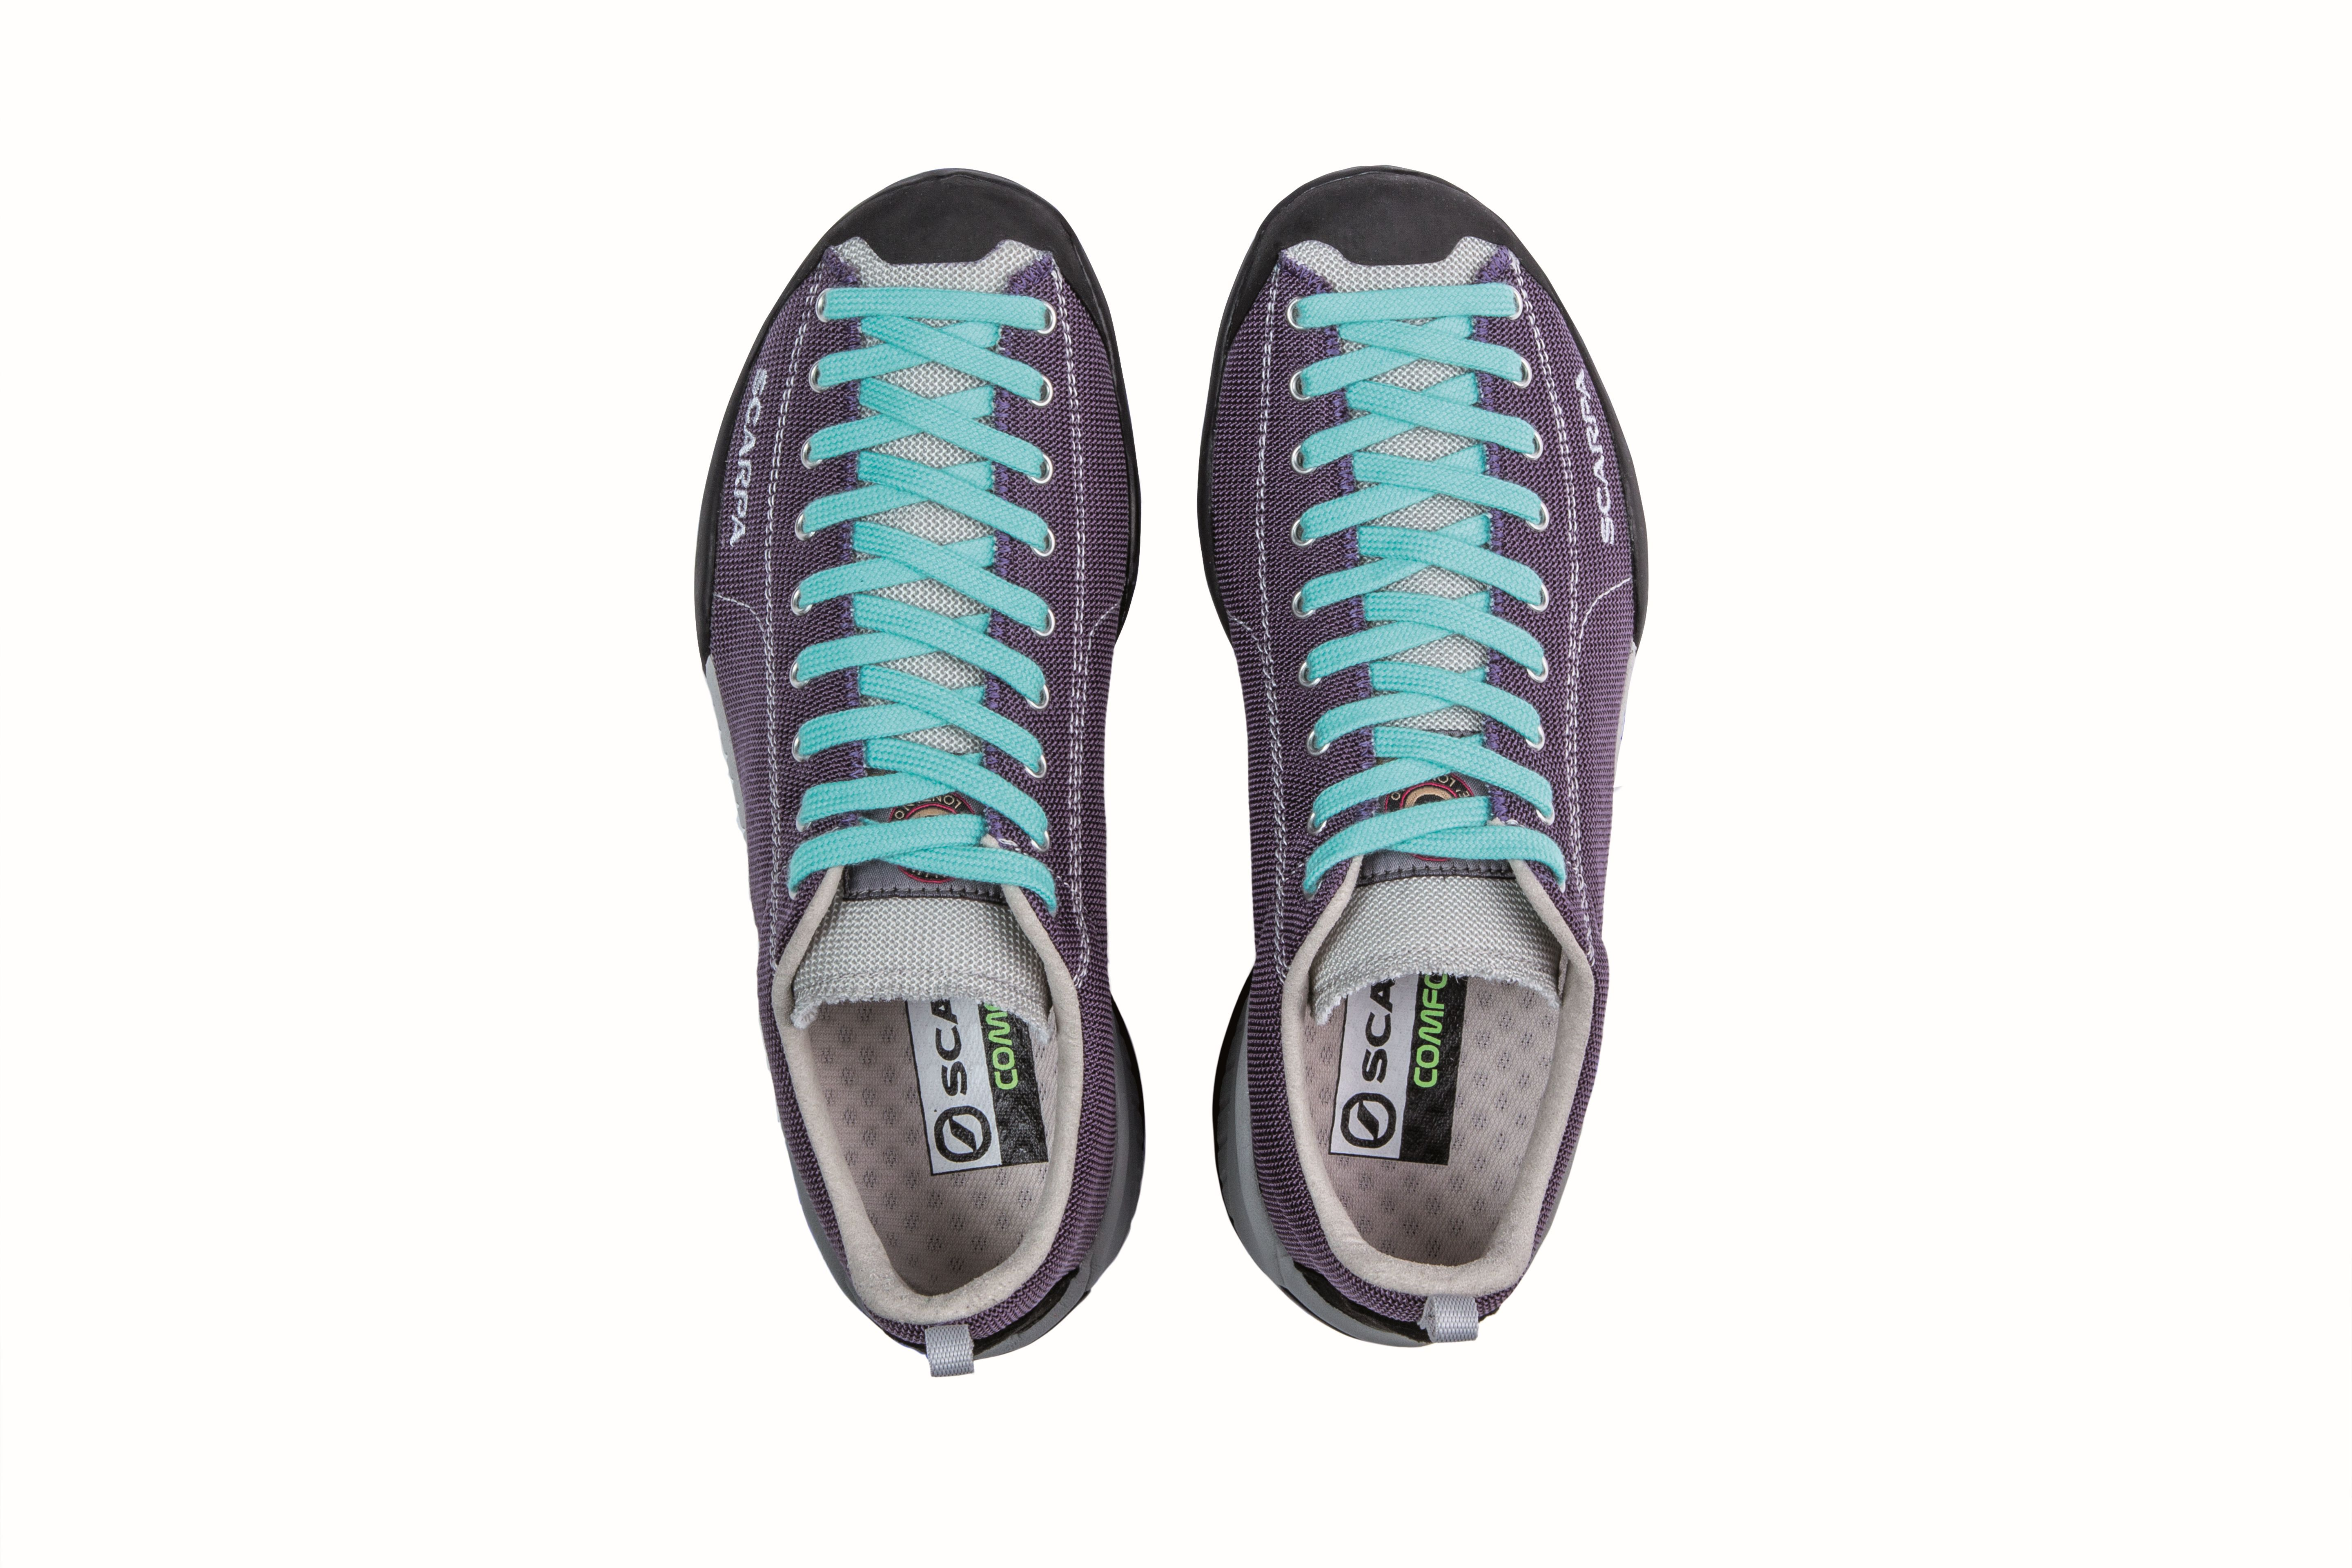 Scarpa Mojito Fresh purple/maledive-30